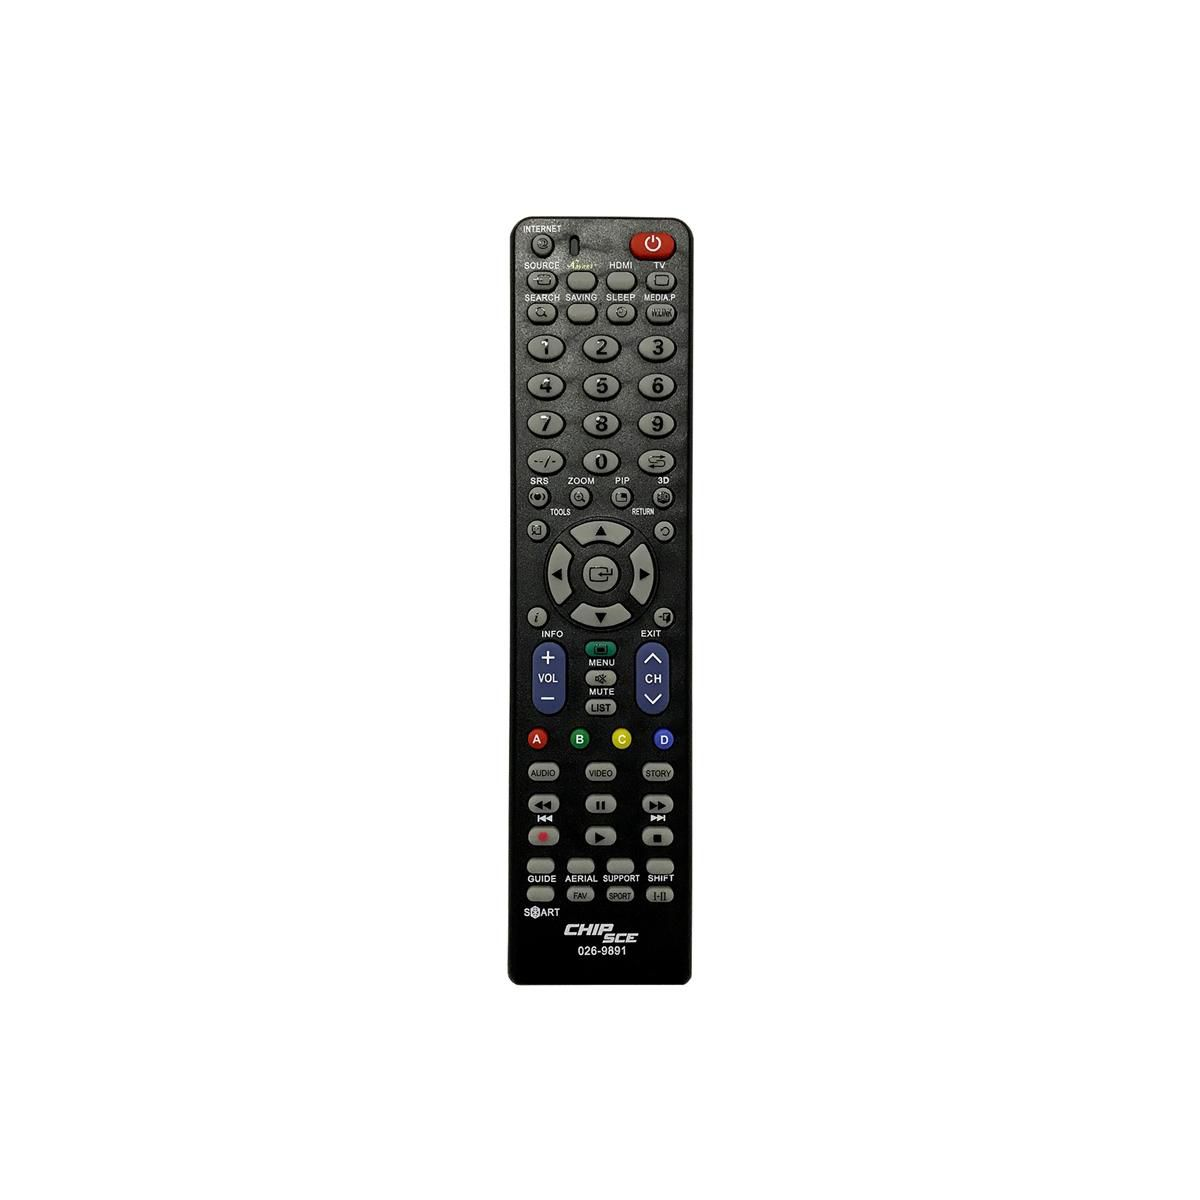 controle remoto universal 026-9891 chipsce para tv lcd samsung